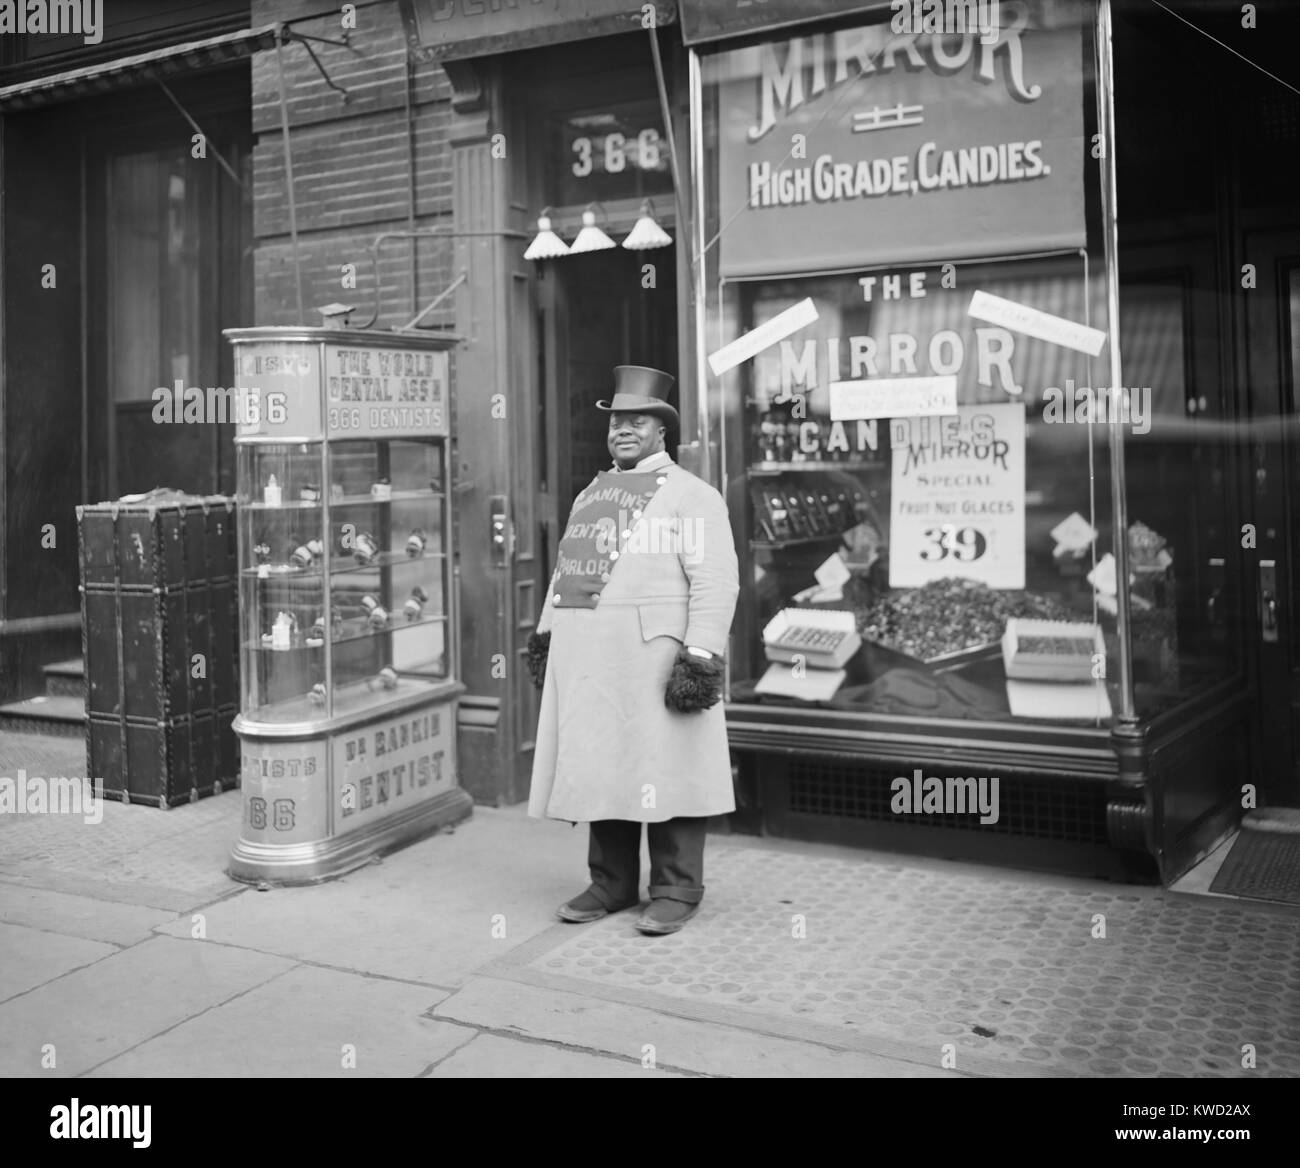 African American promoting Dr. Ranklins Dental Parlor with on his doubled breasted coat. The door of 366 Fifth Avenue - Stock Image